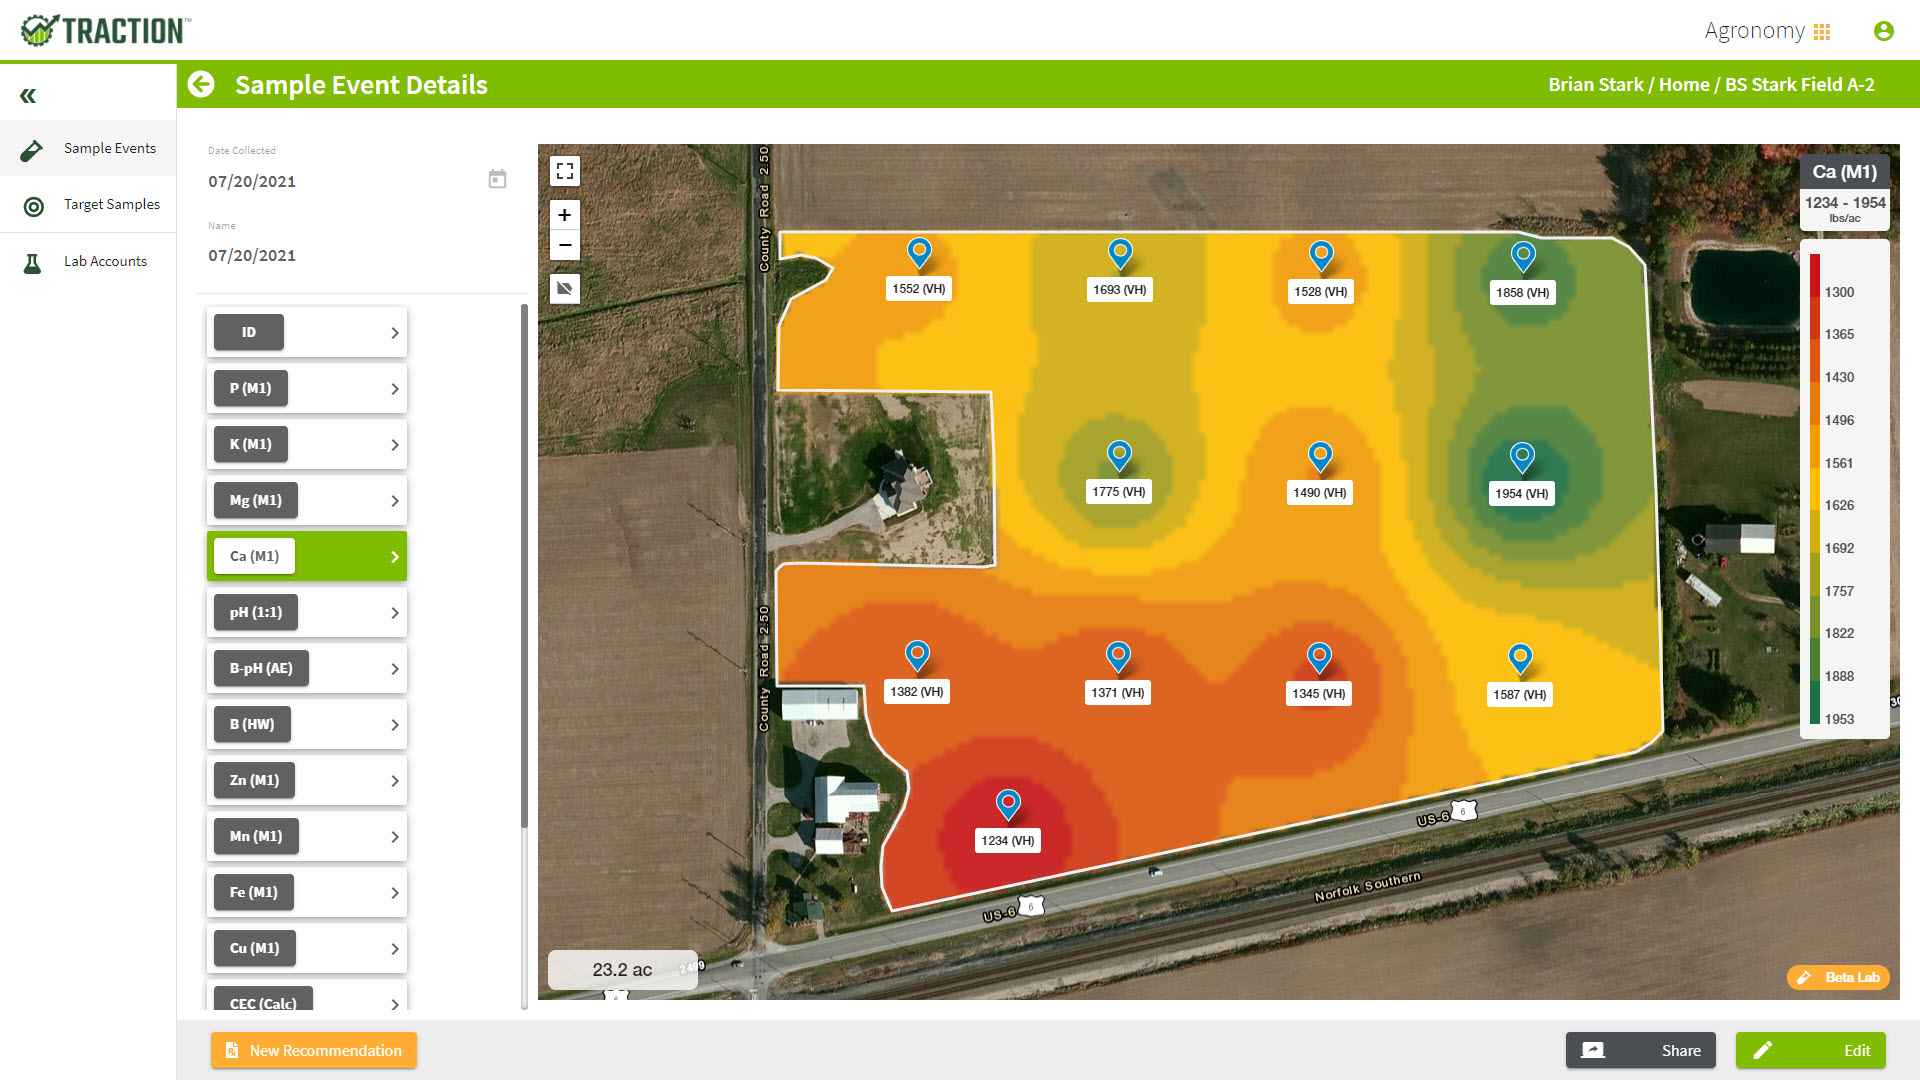 Traction agronomy software generates recommendations using pre-built formulas.